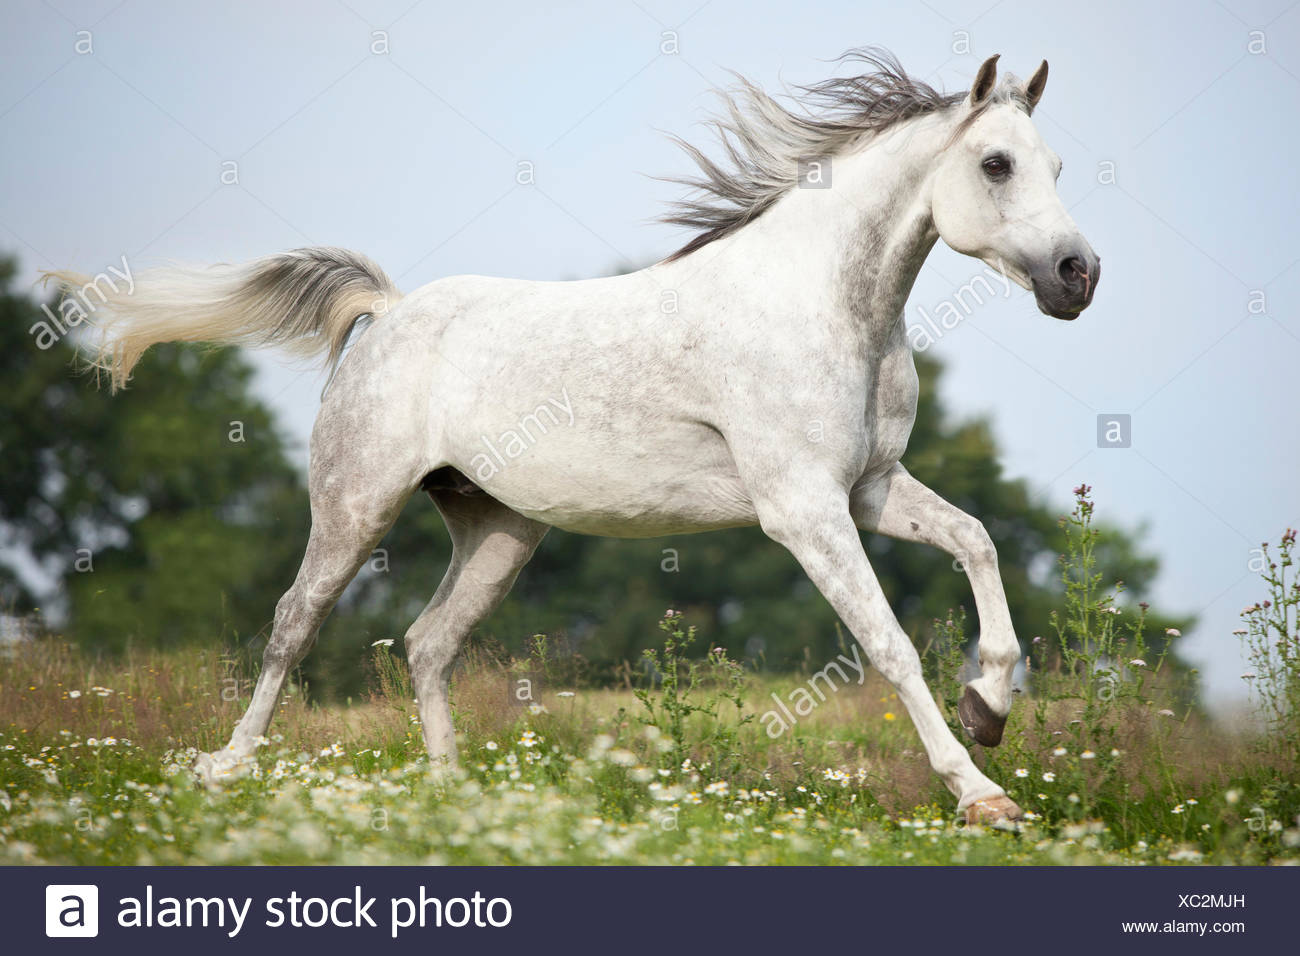 Thoroughbred Arab, dapple gray, gelding galloping on meadow with flowers - Stock Image